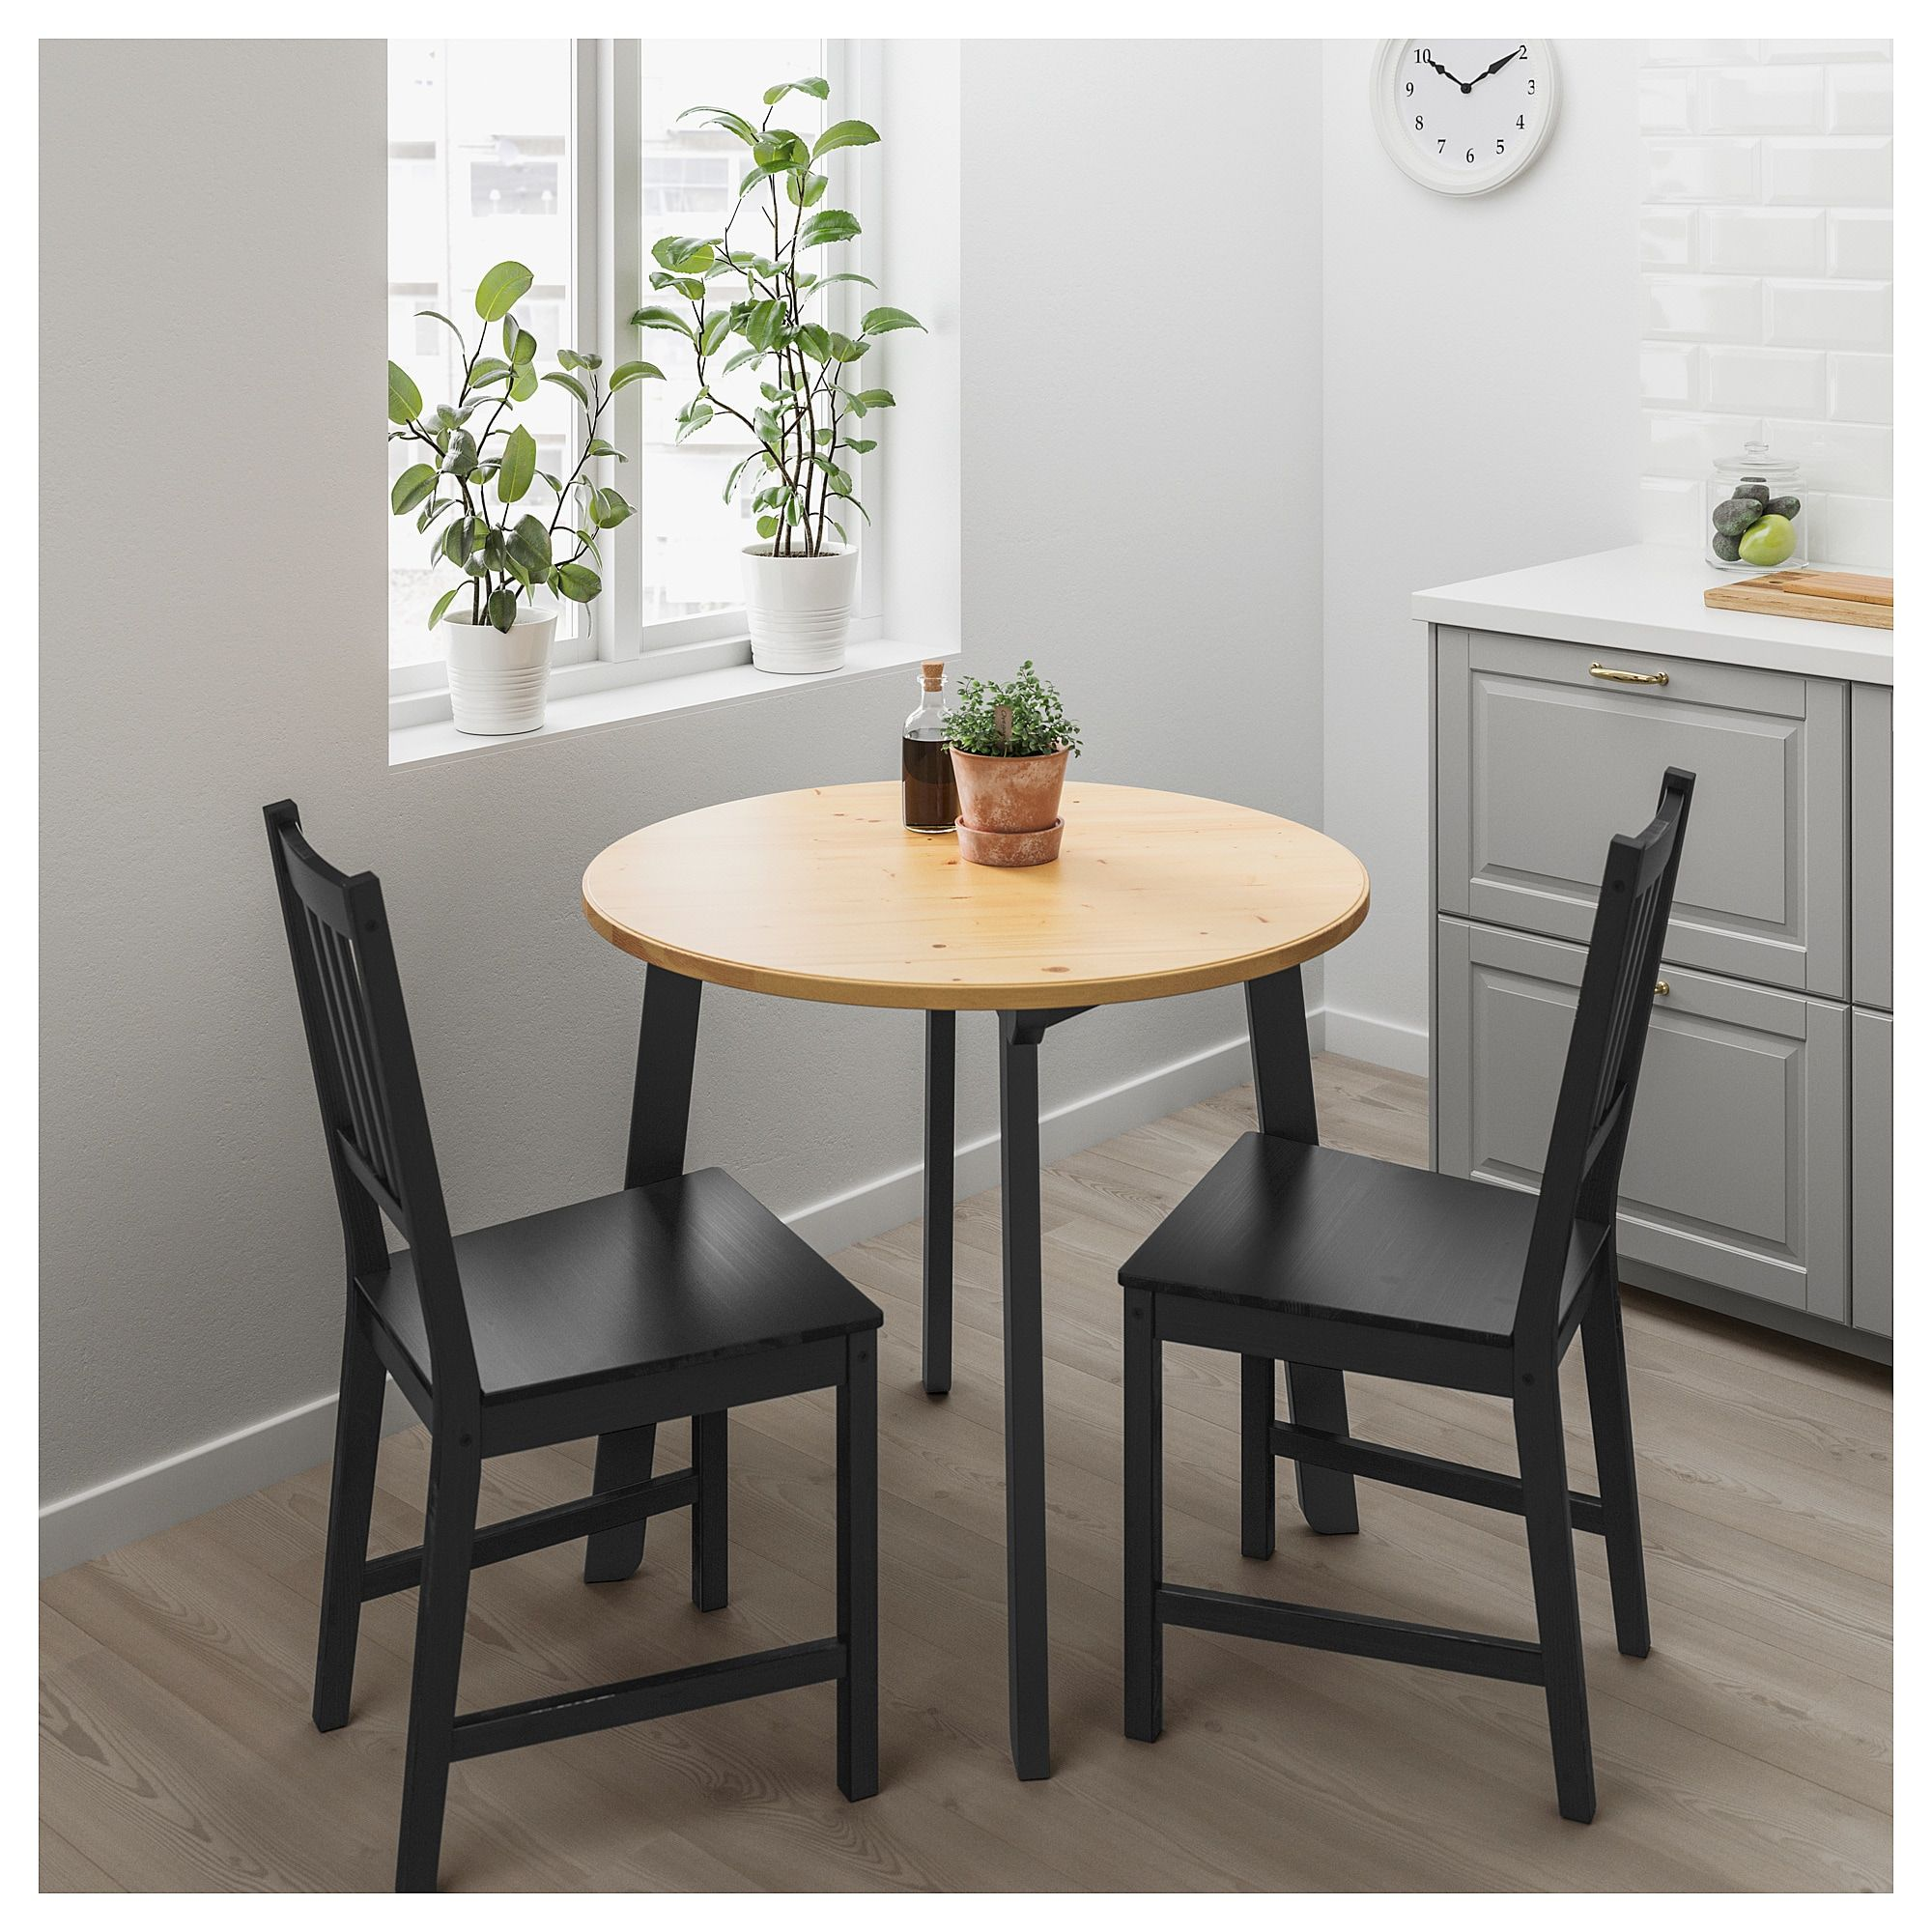 Small Round Dining Table Ikea Gamlared Table Light Antique Stain Black Stained House Small